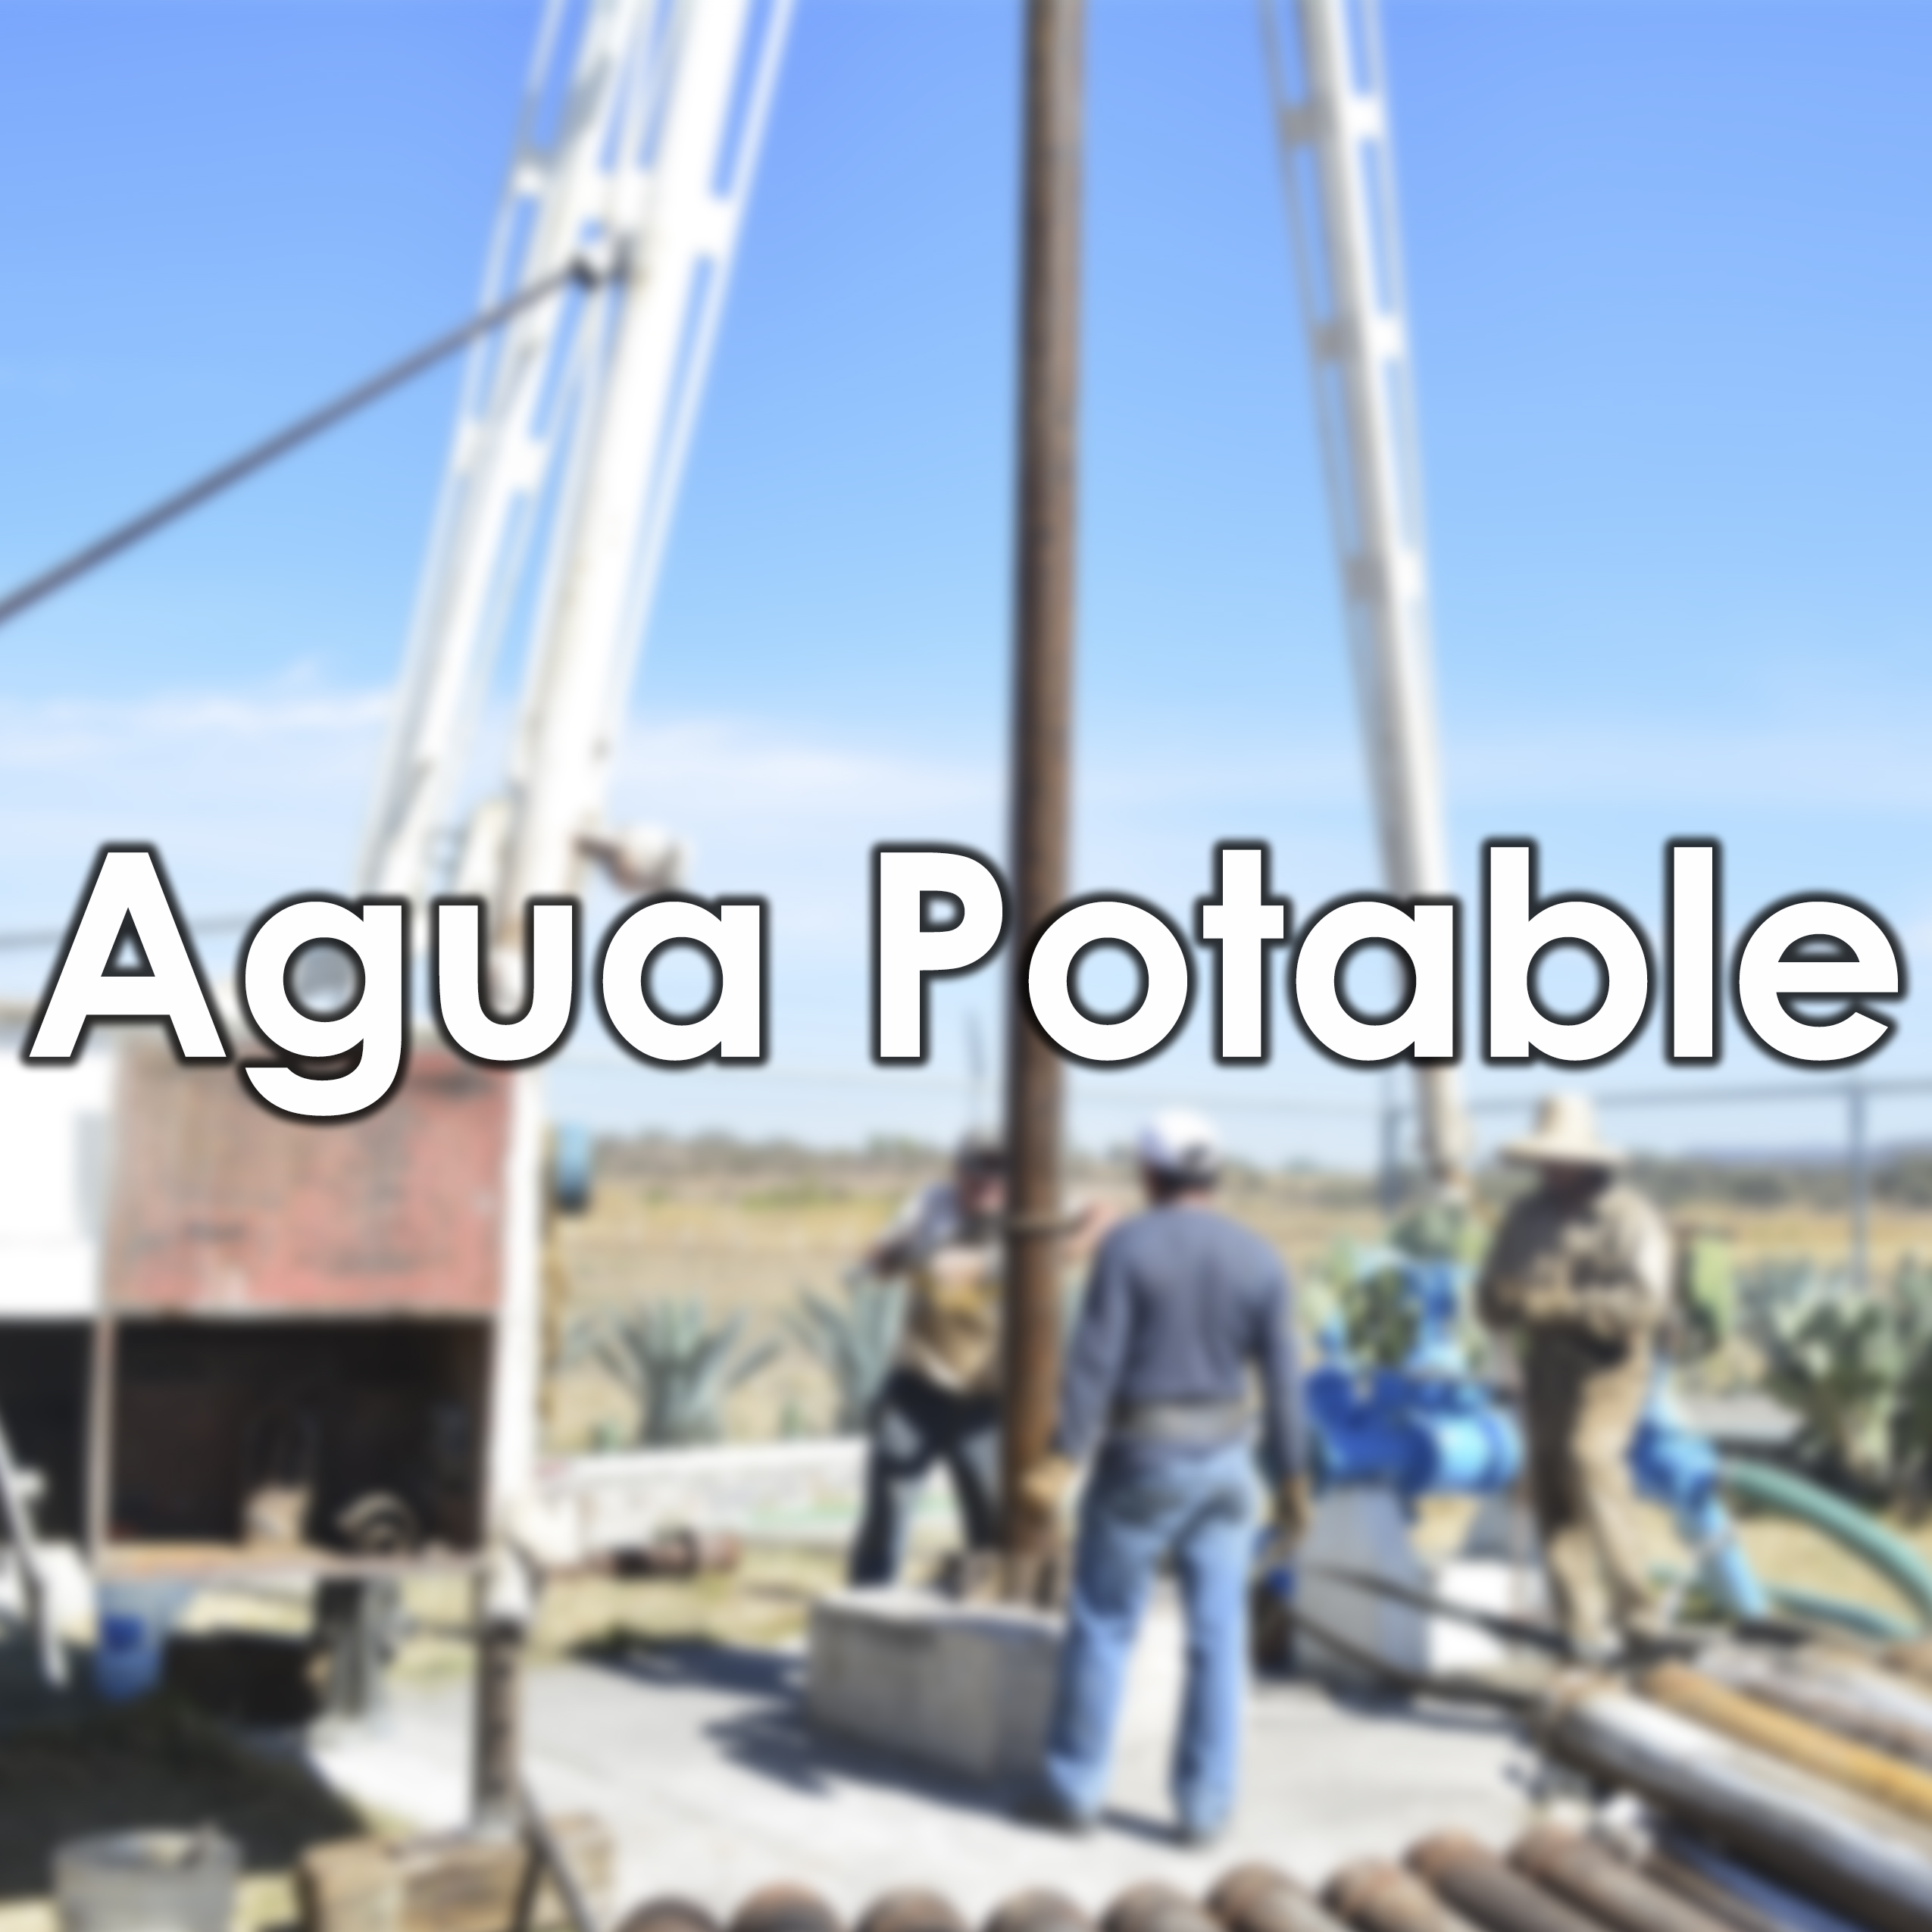 agua potable.jpg